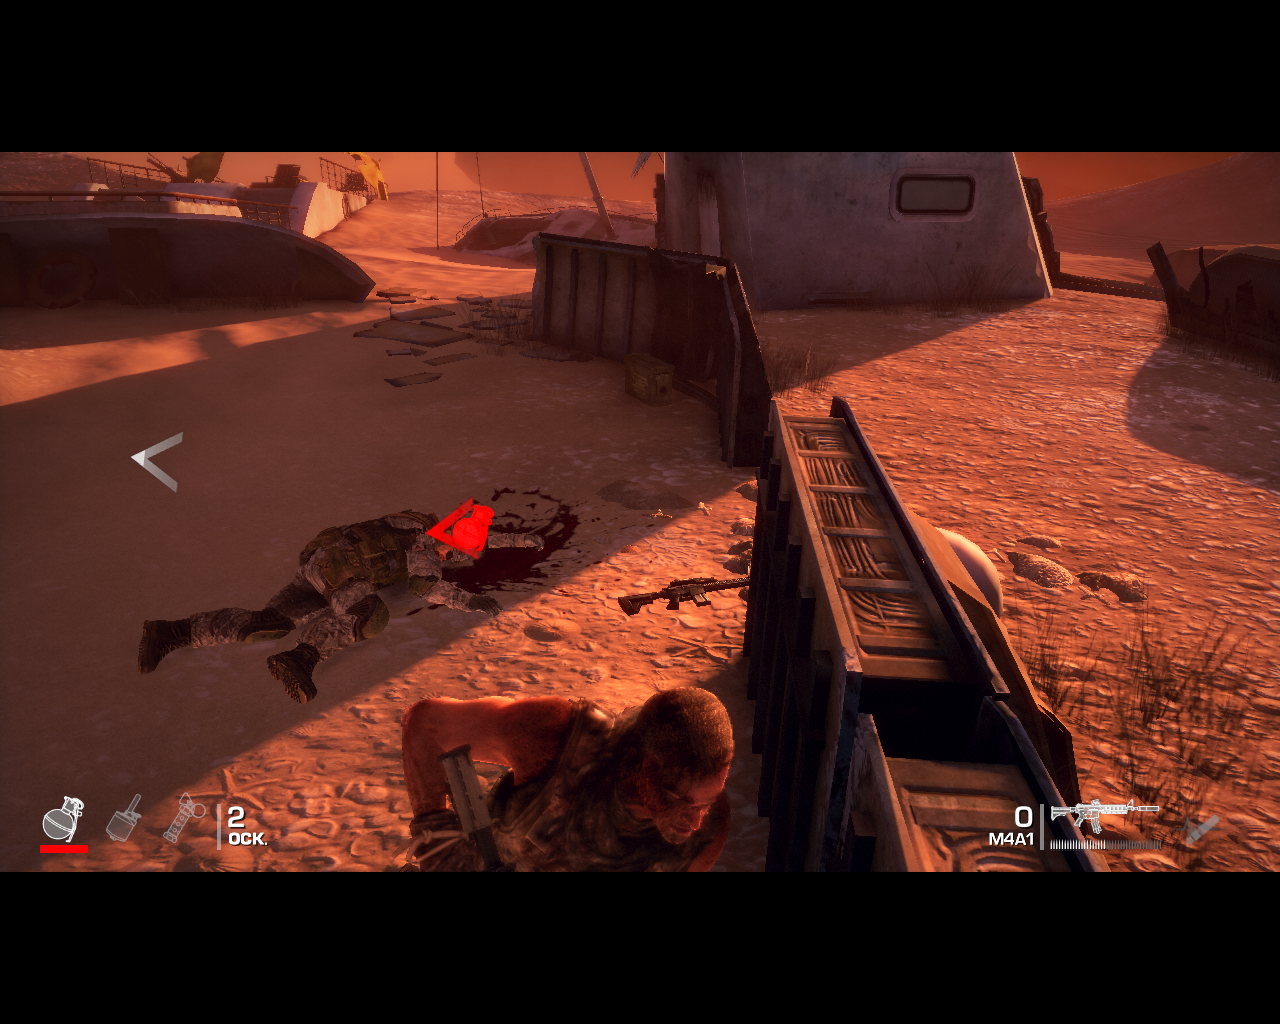 Spec Ops: The Line Windows Grenade! Gotta move outta here.